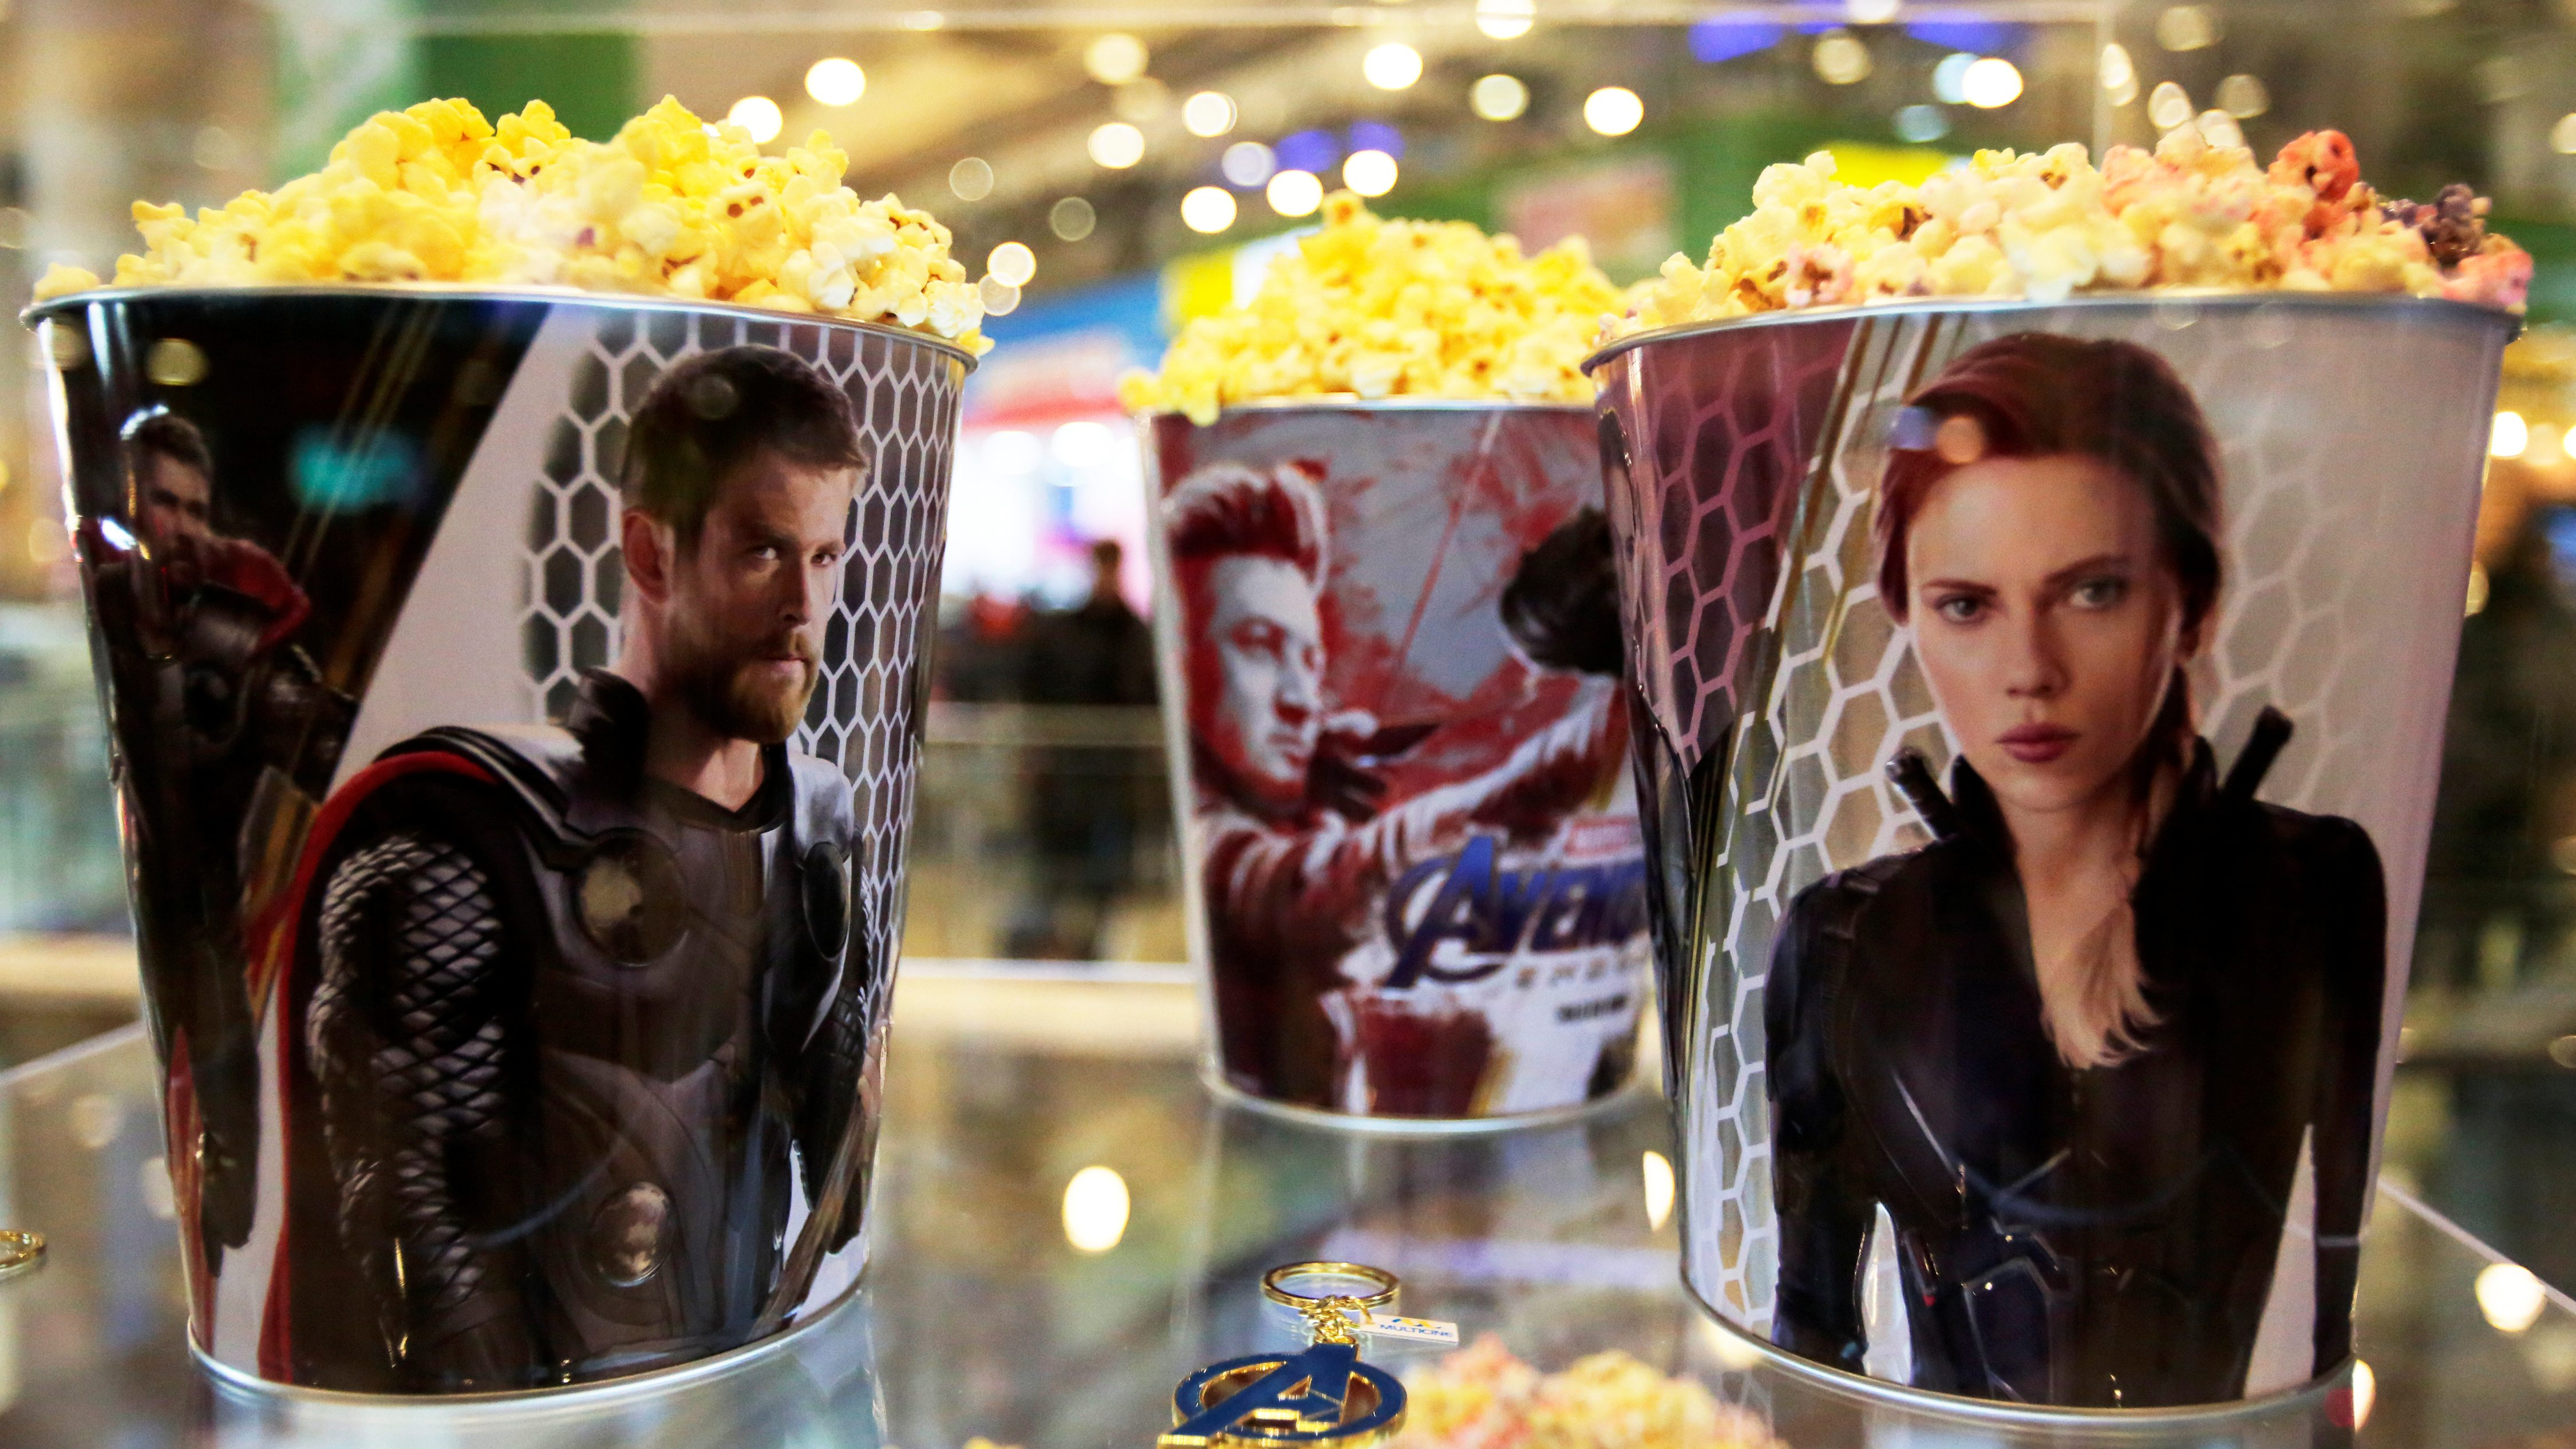 """Popcorn buckets are seen during an early premiere of """"The Avengers: Endgame"""" movie in La Paz"""